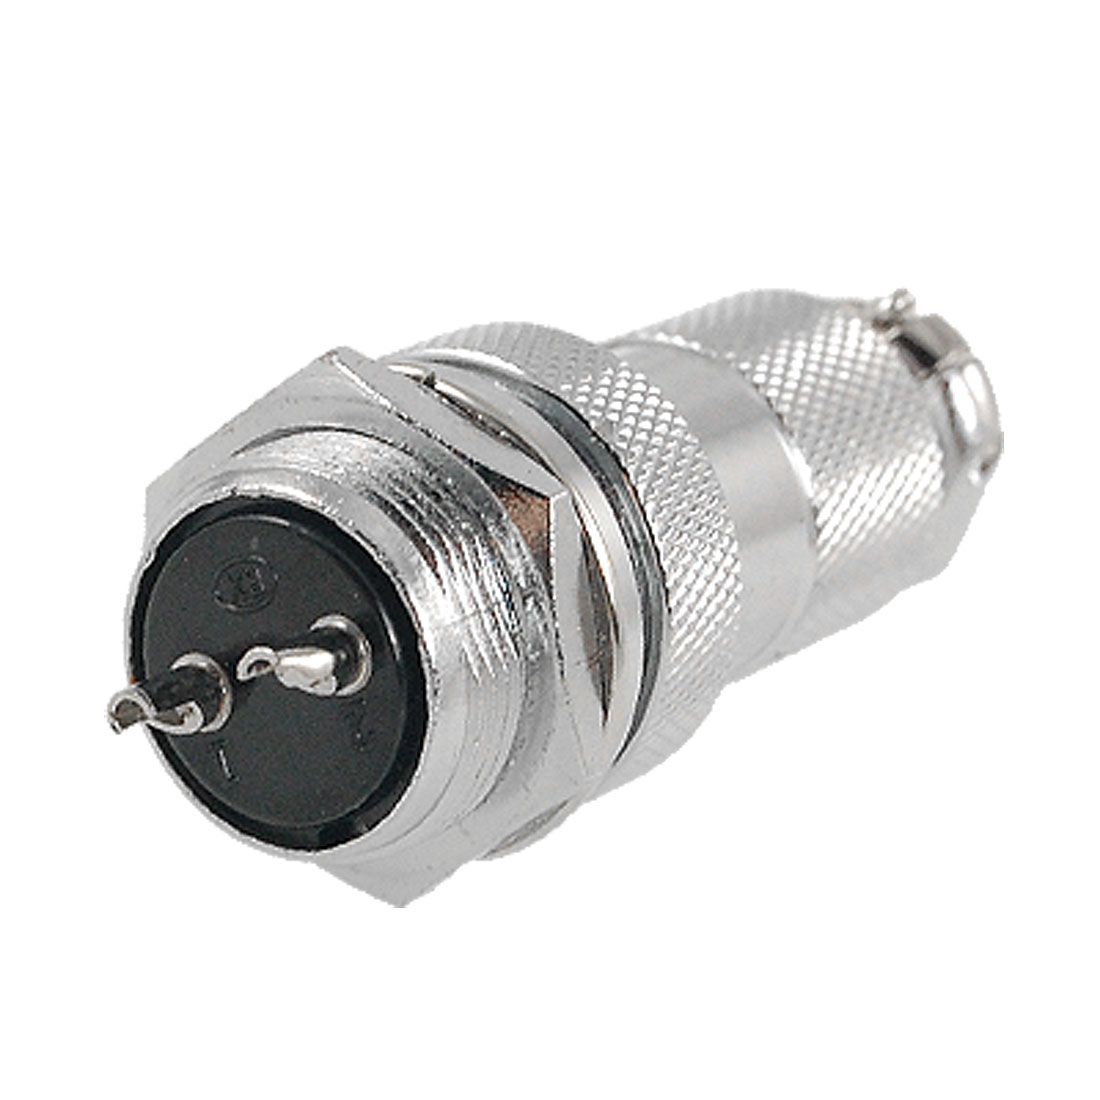 DF20-2B 2 Terminal Aviation Circular Connector 250V 20A